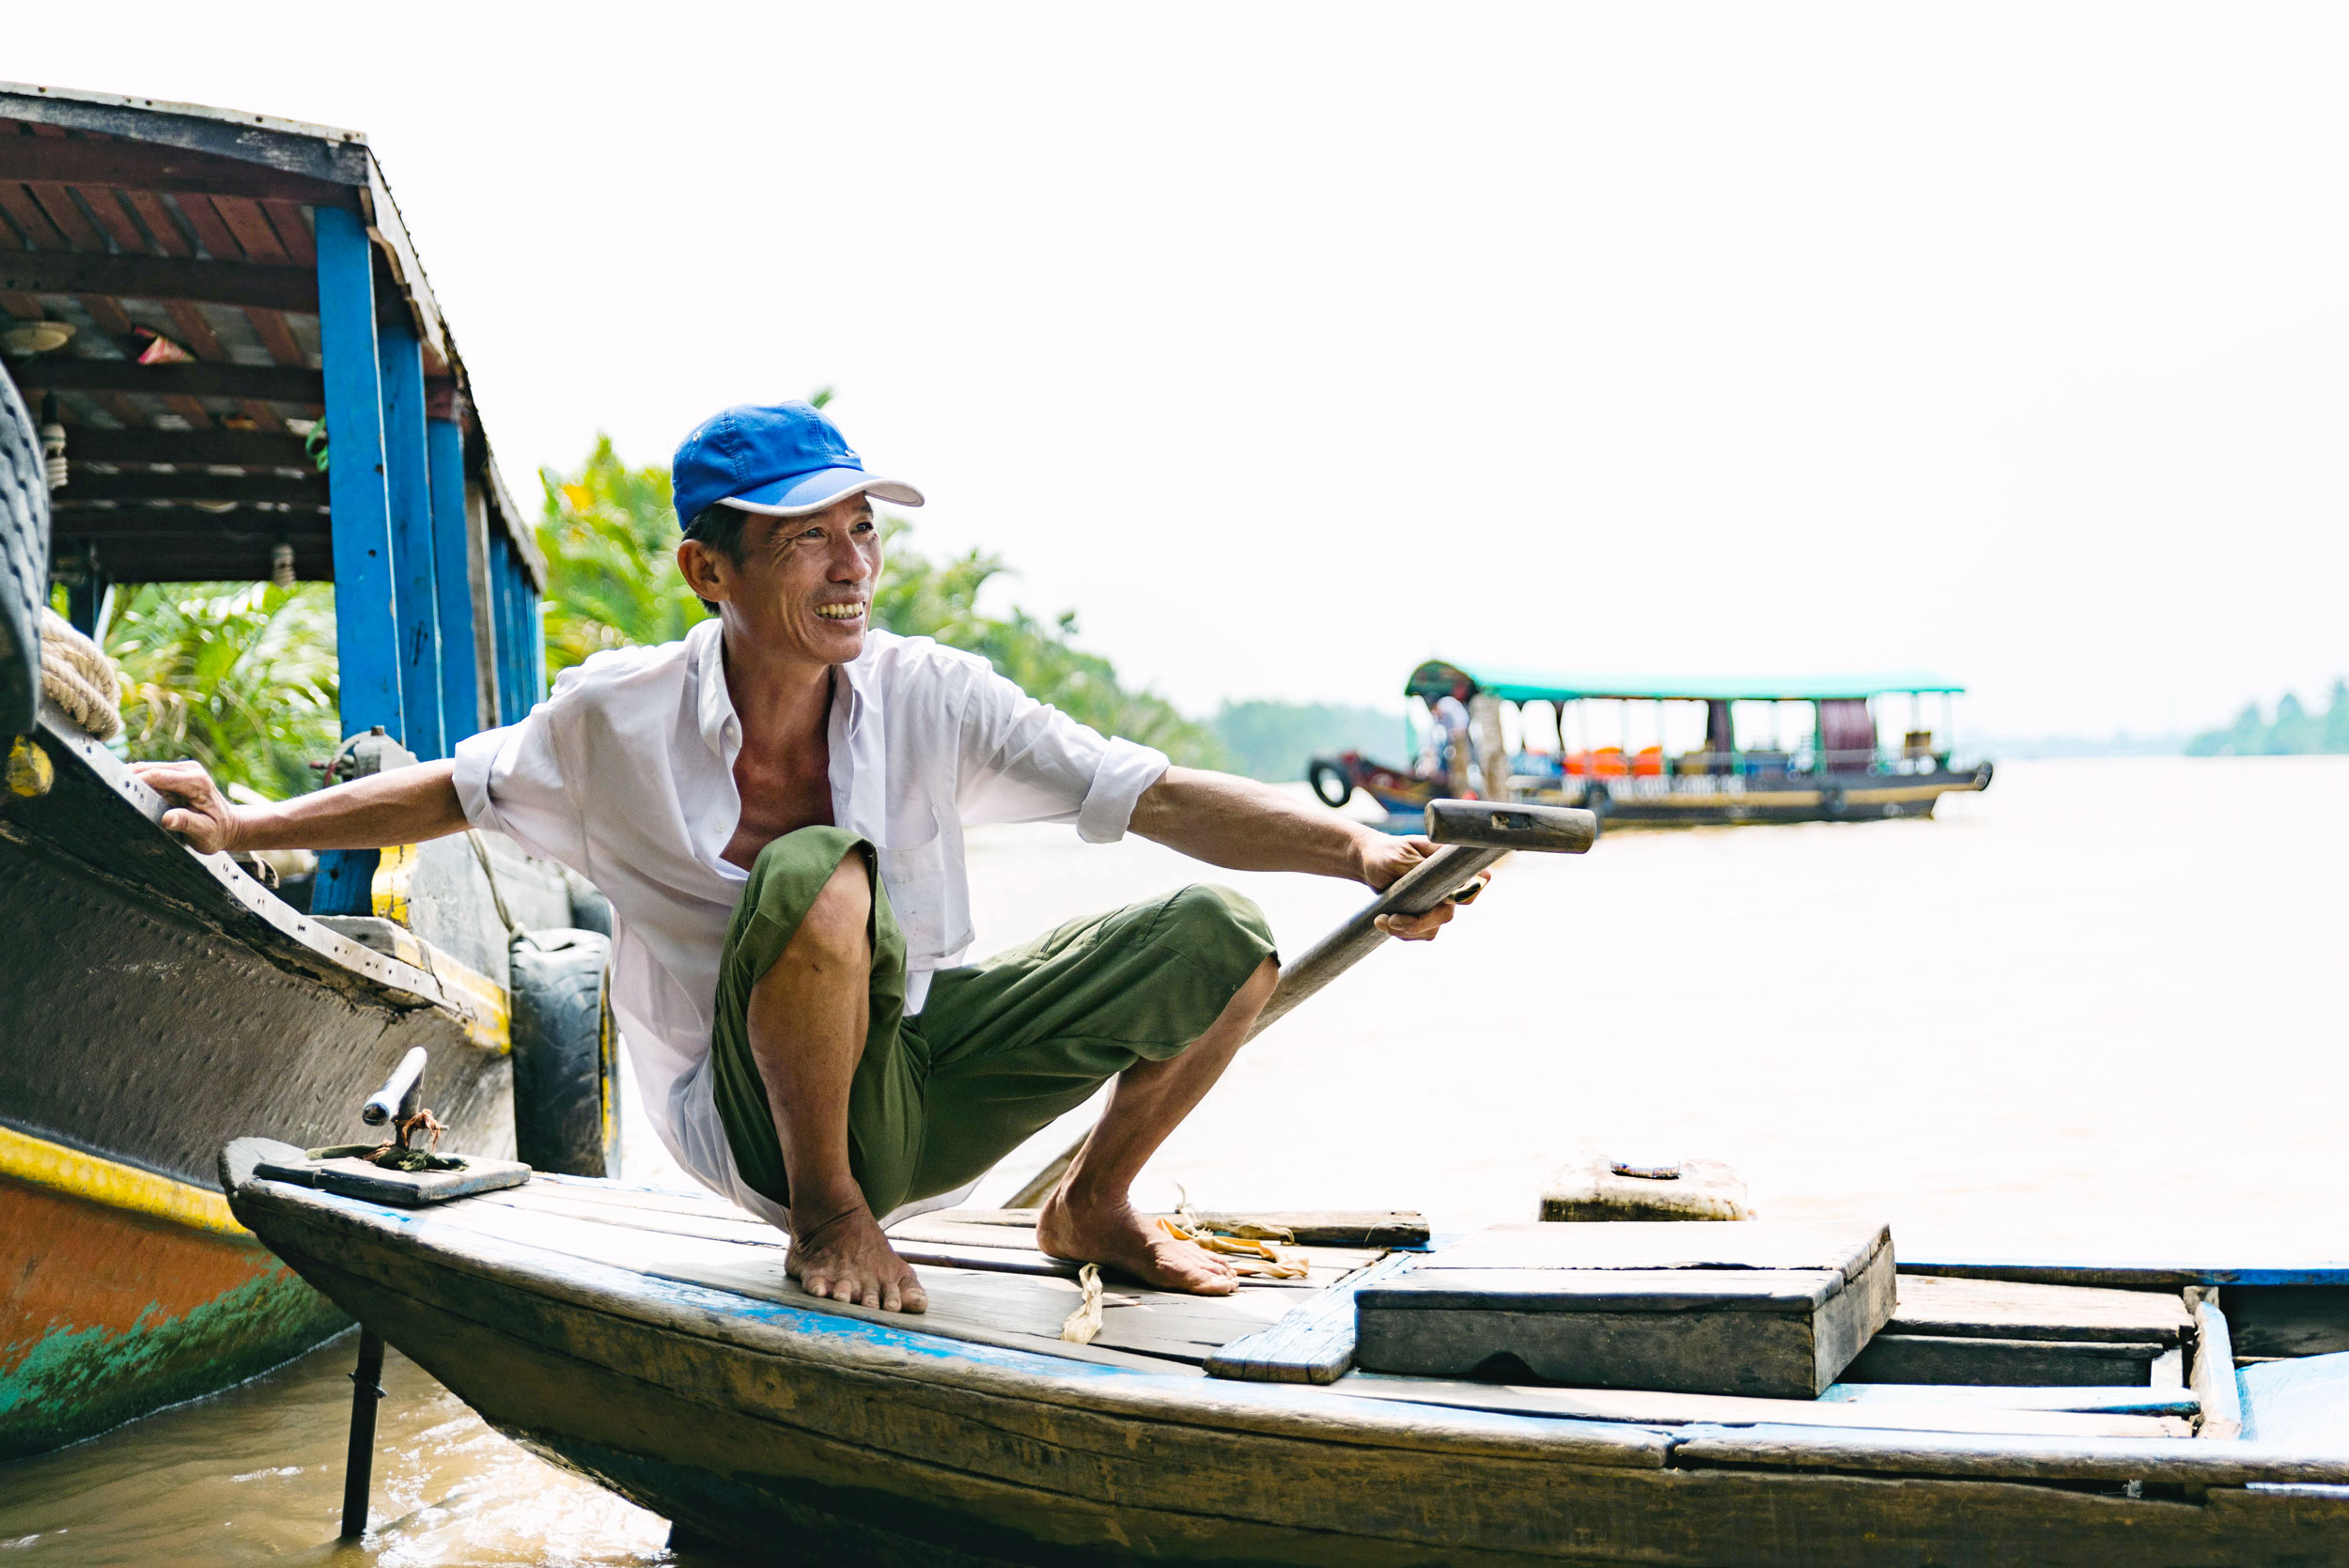 A man smiles while on his boat on the Mekong river